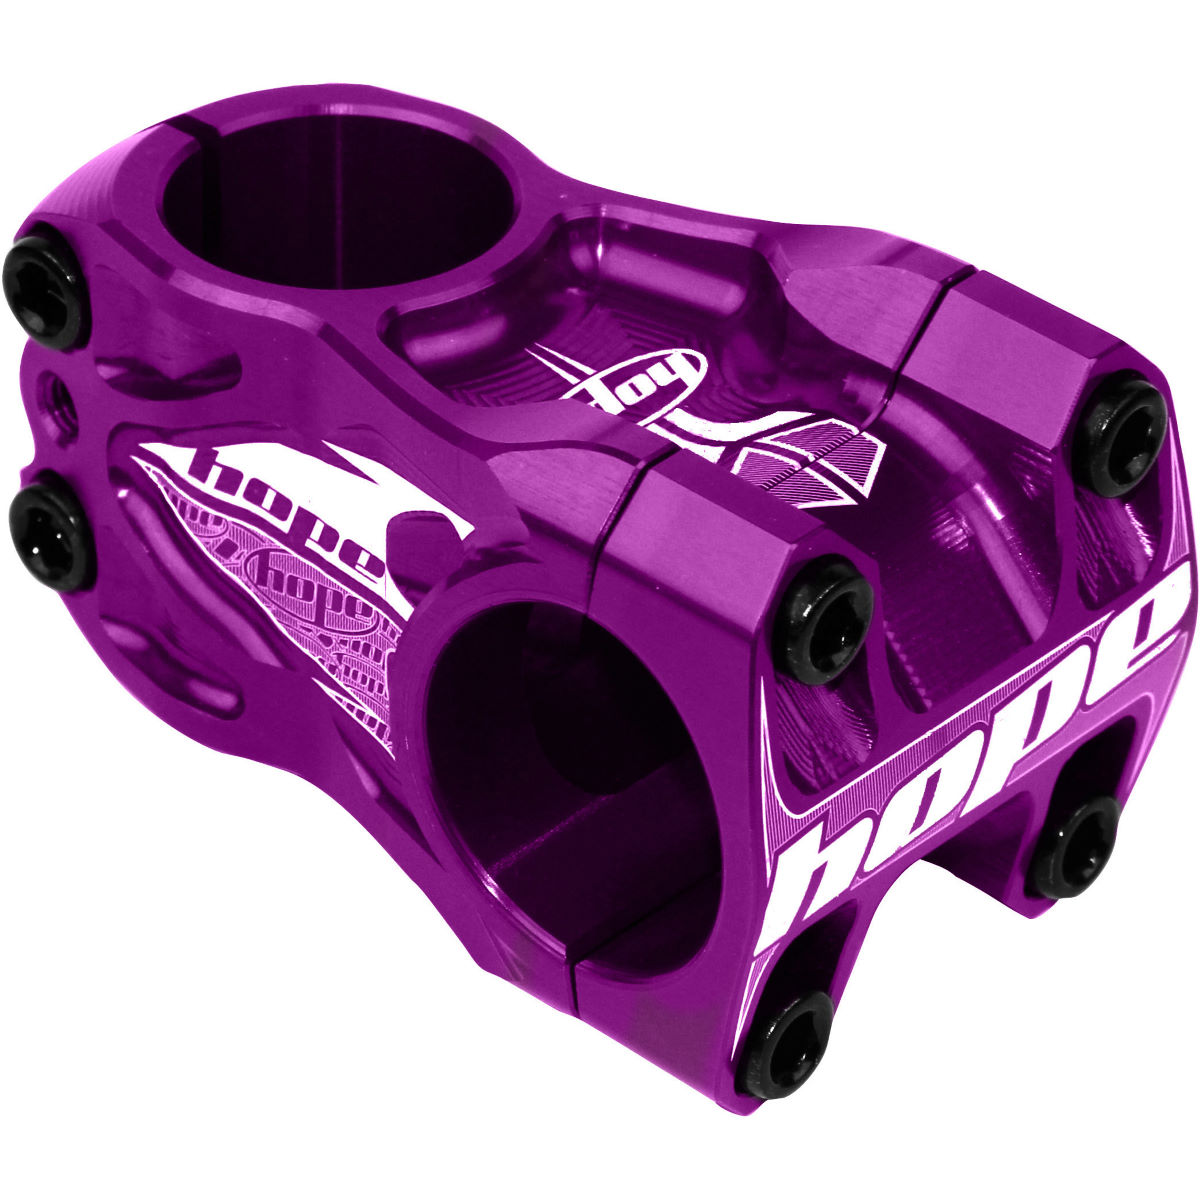 Potence oversize VTT/Descente Hope - 0 Deg 50mm 6 Degrees Mauve